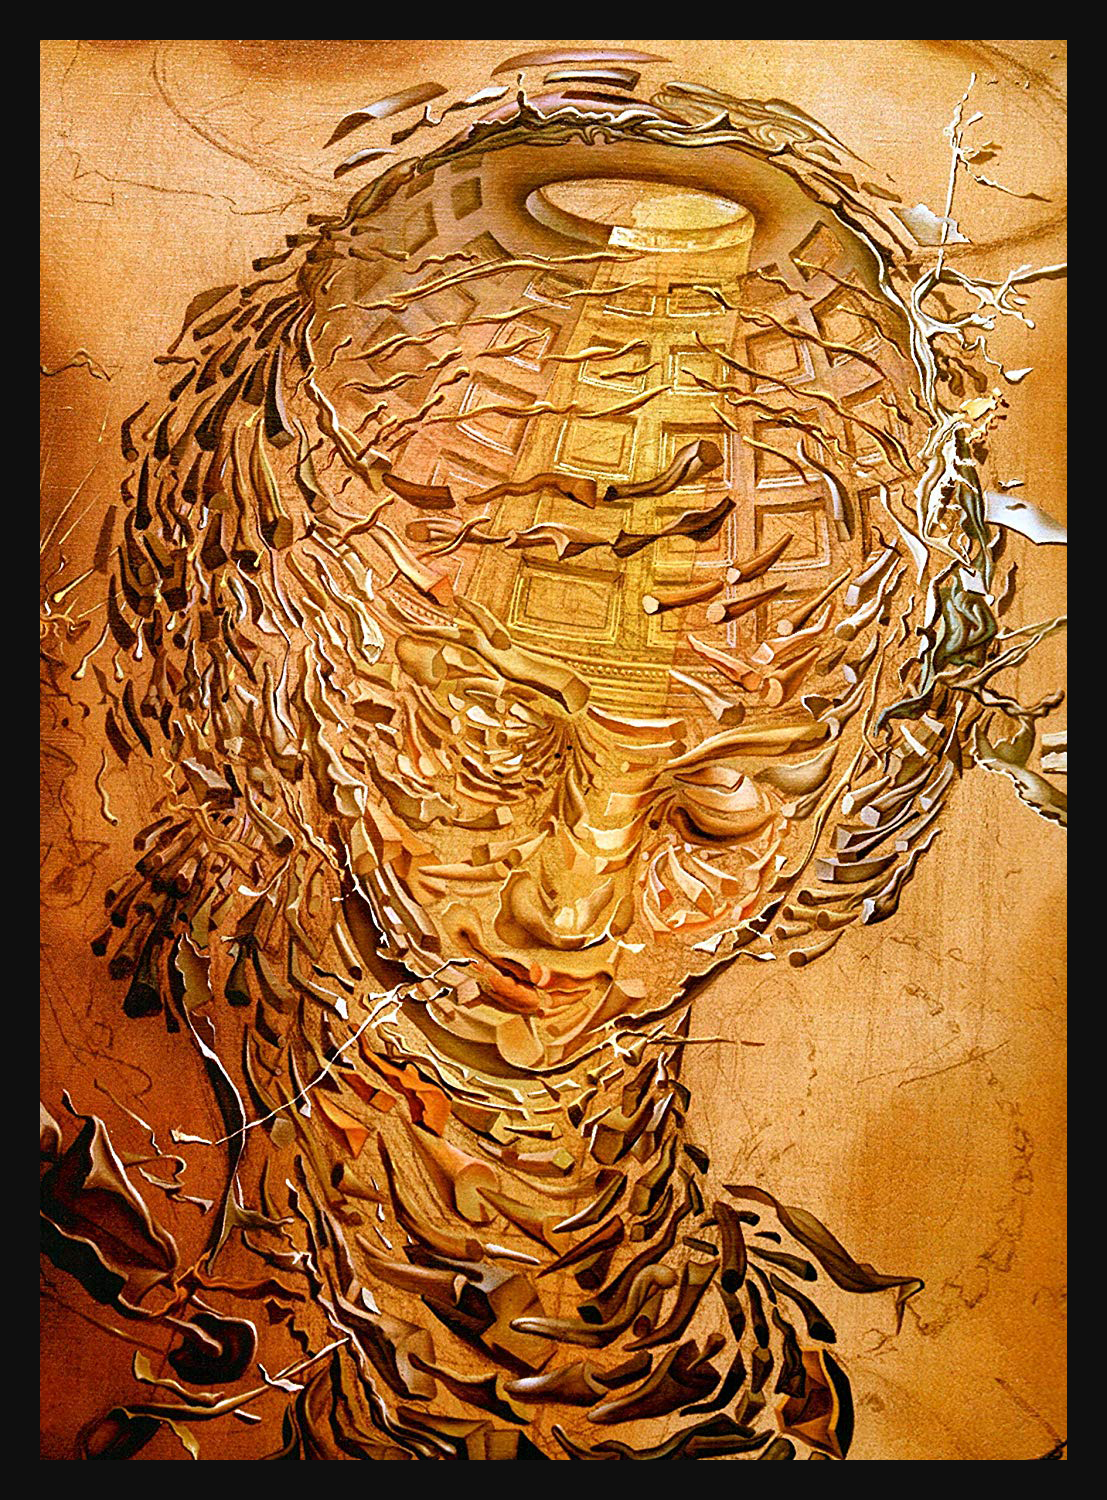 Exploding Raphaelesque Head - Salvador Dali (1951) dpurb d'purb website